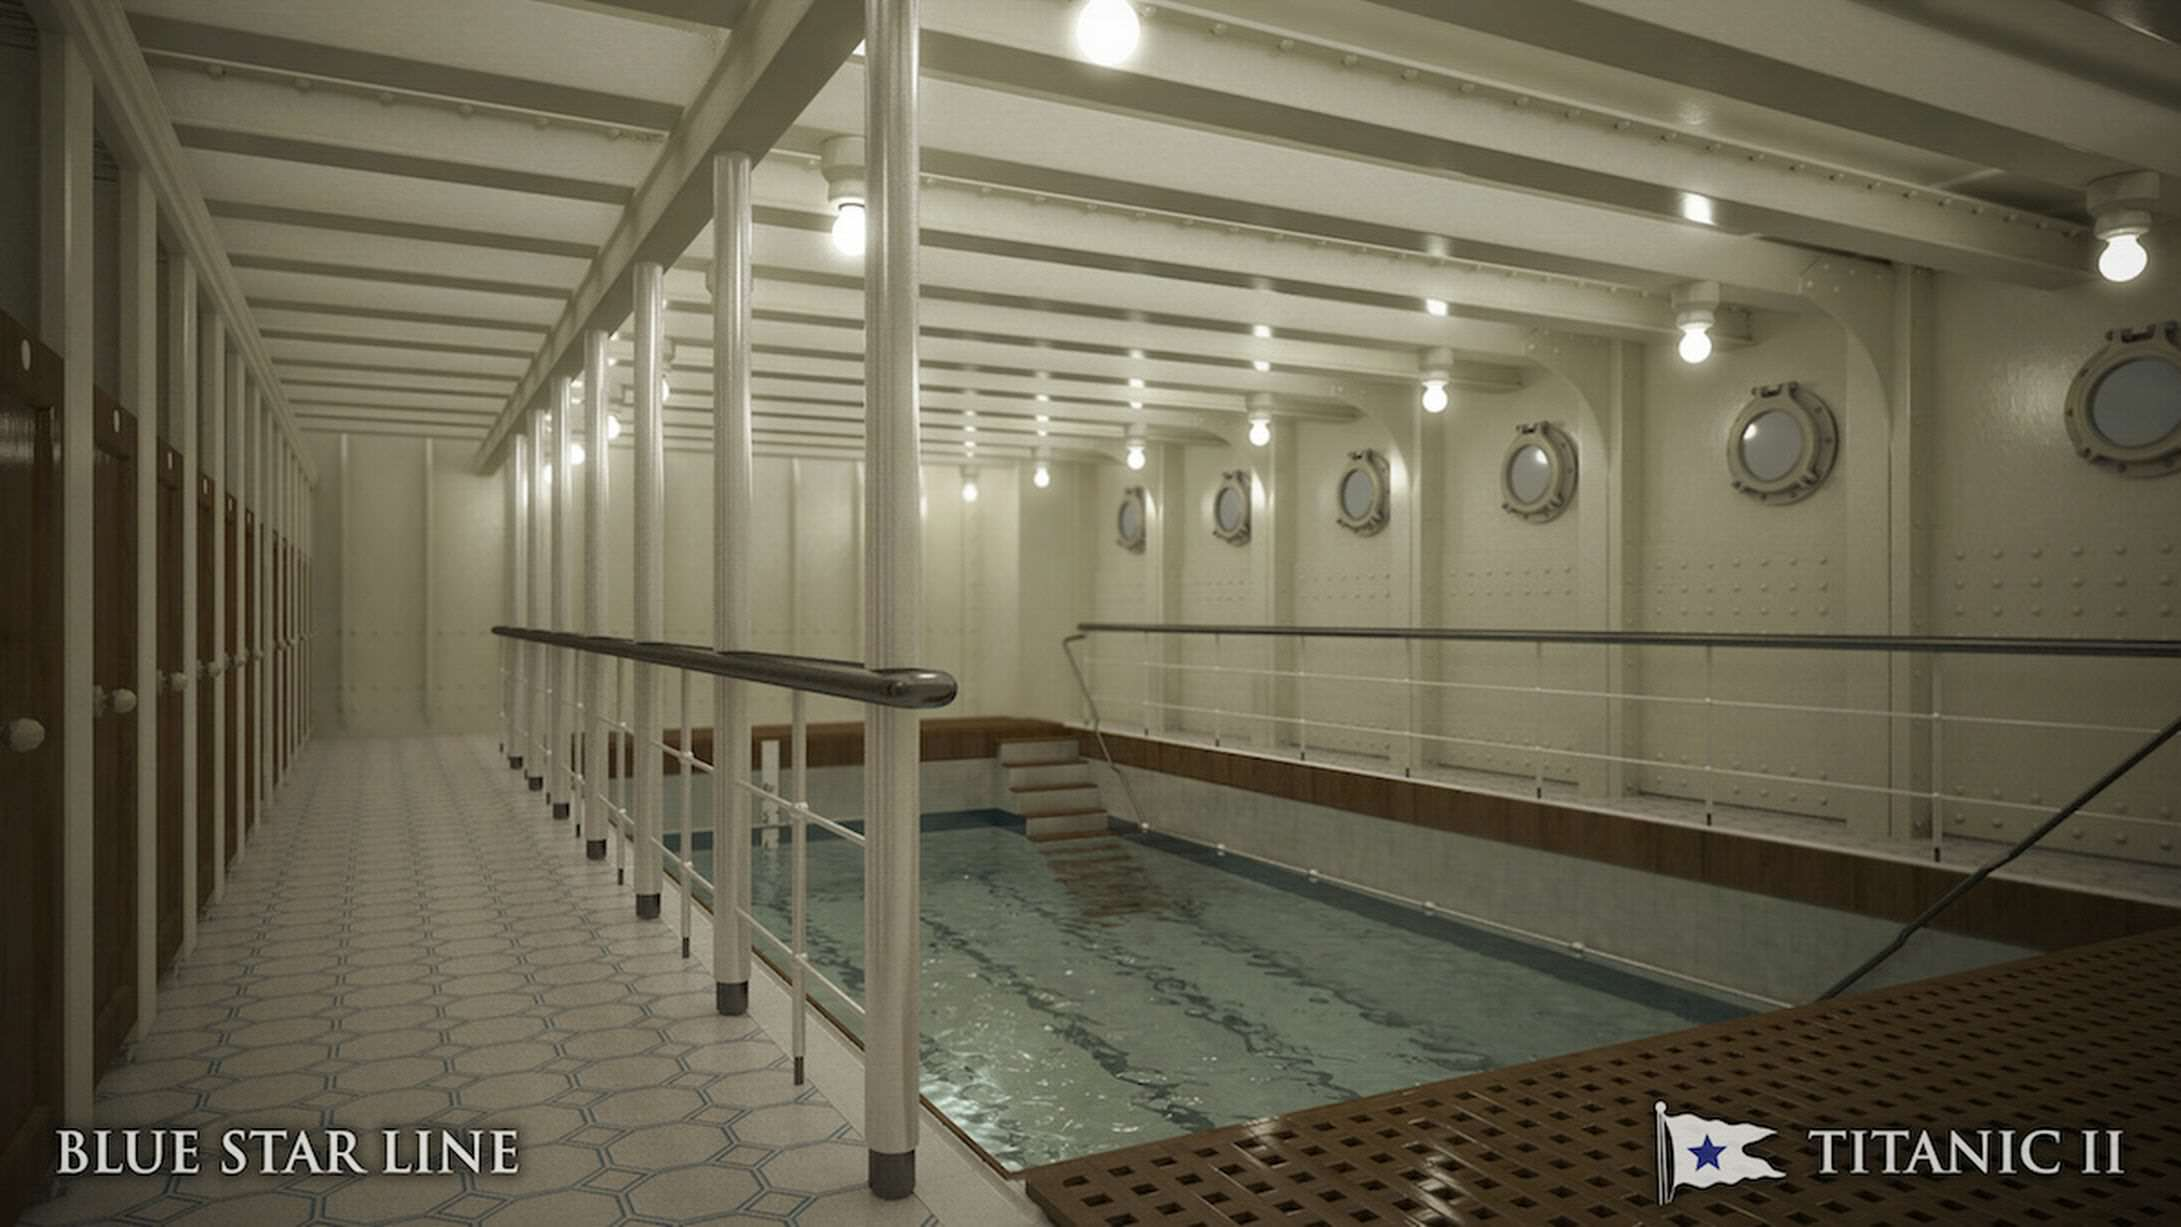 Incredible New Photos Give First Look Inside Titanic 2 titanic new 5